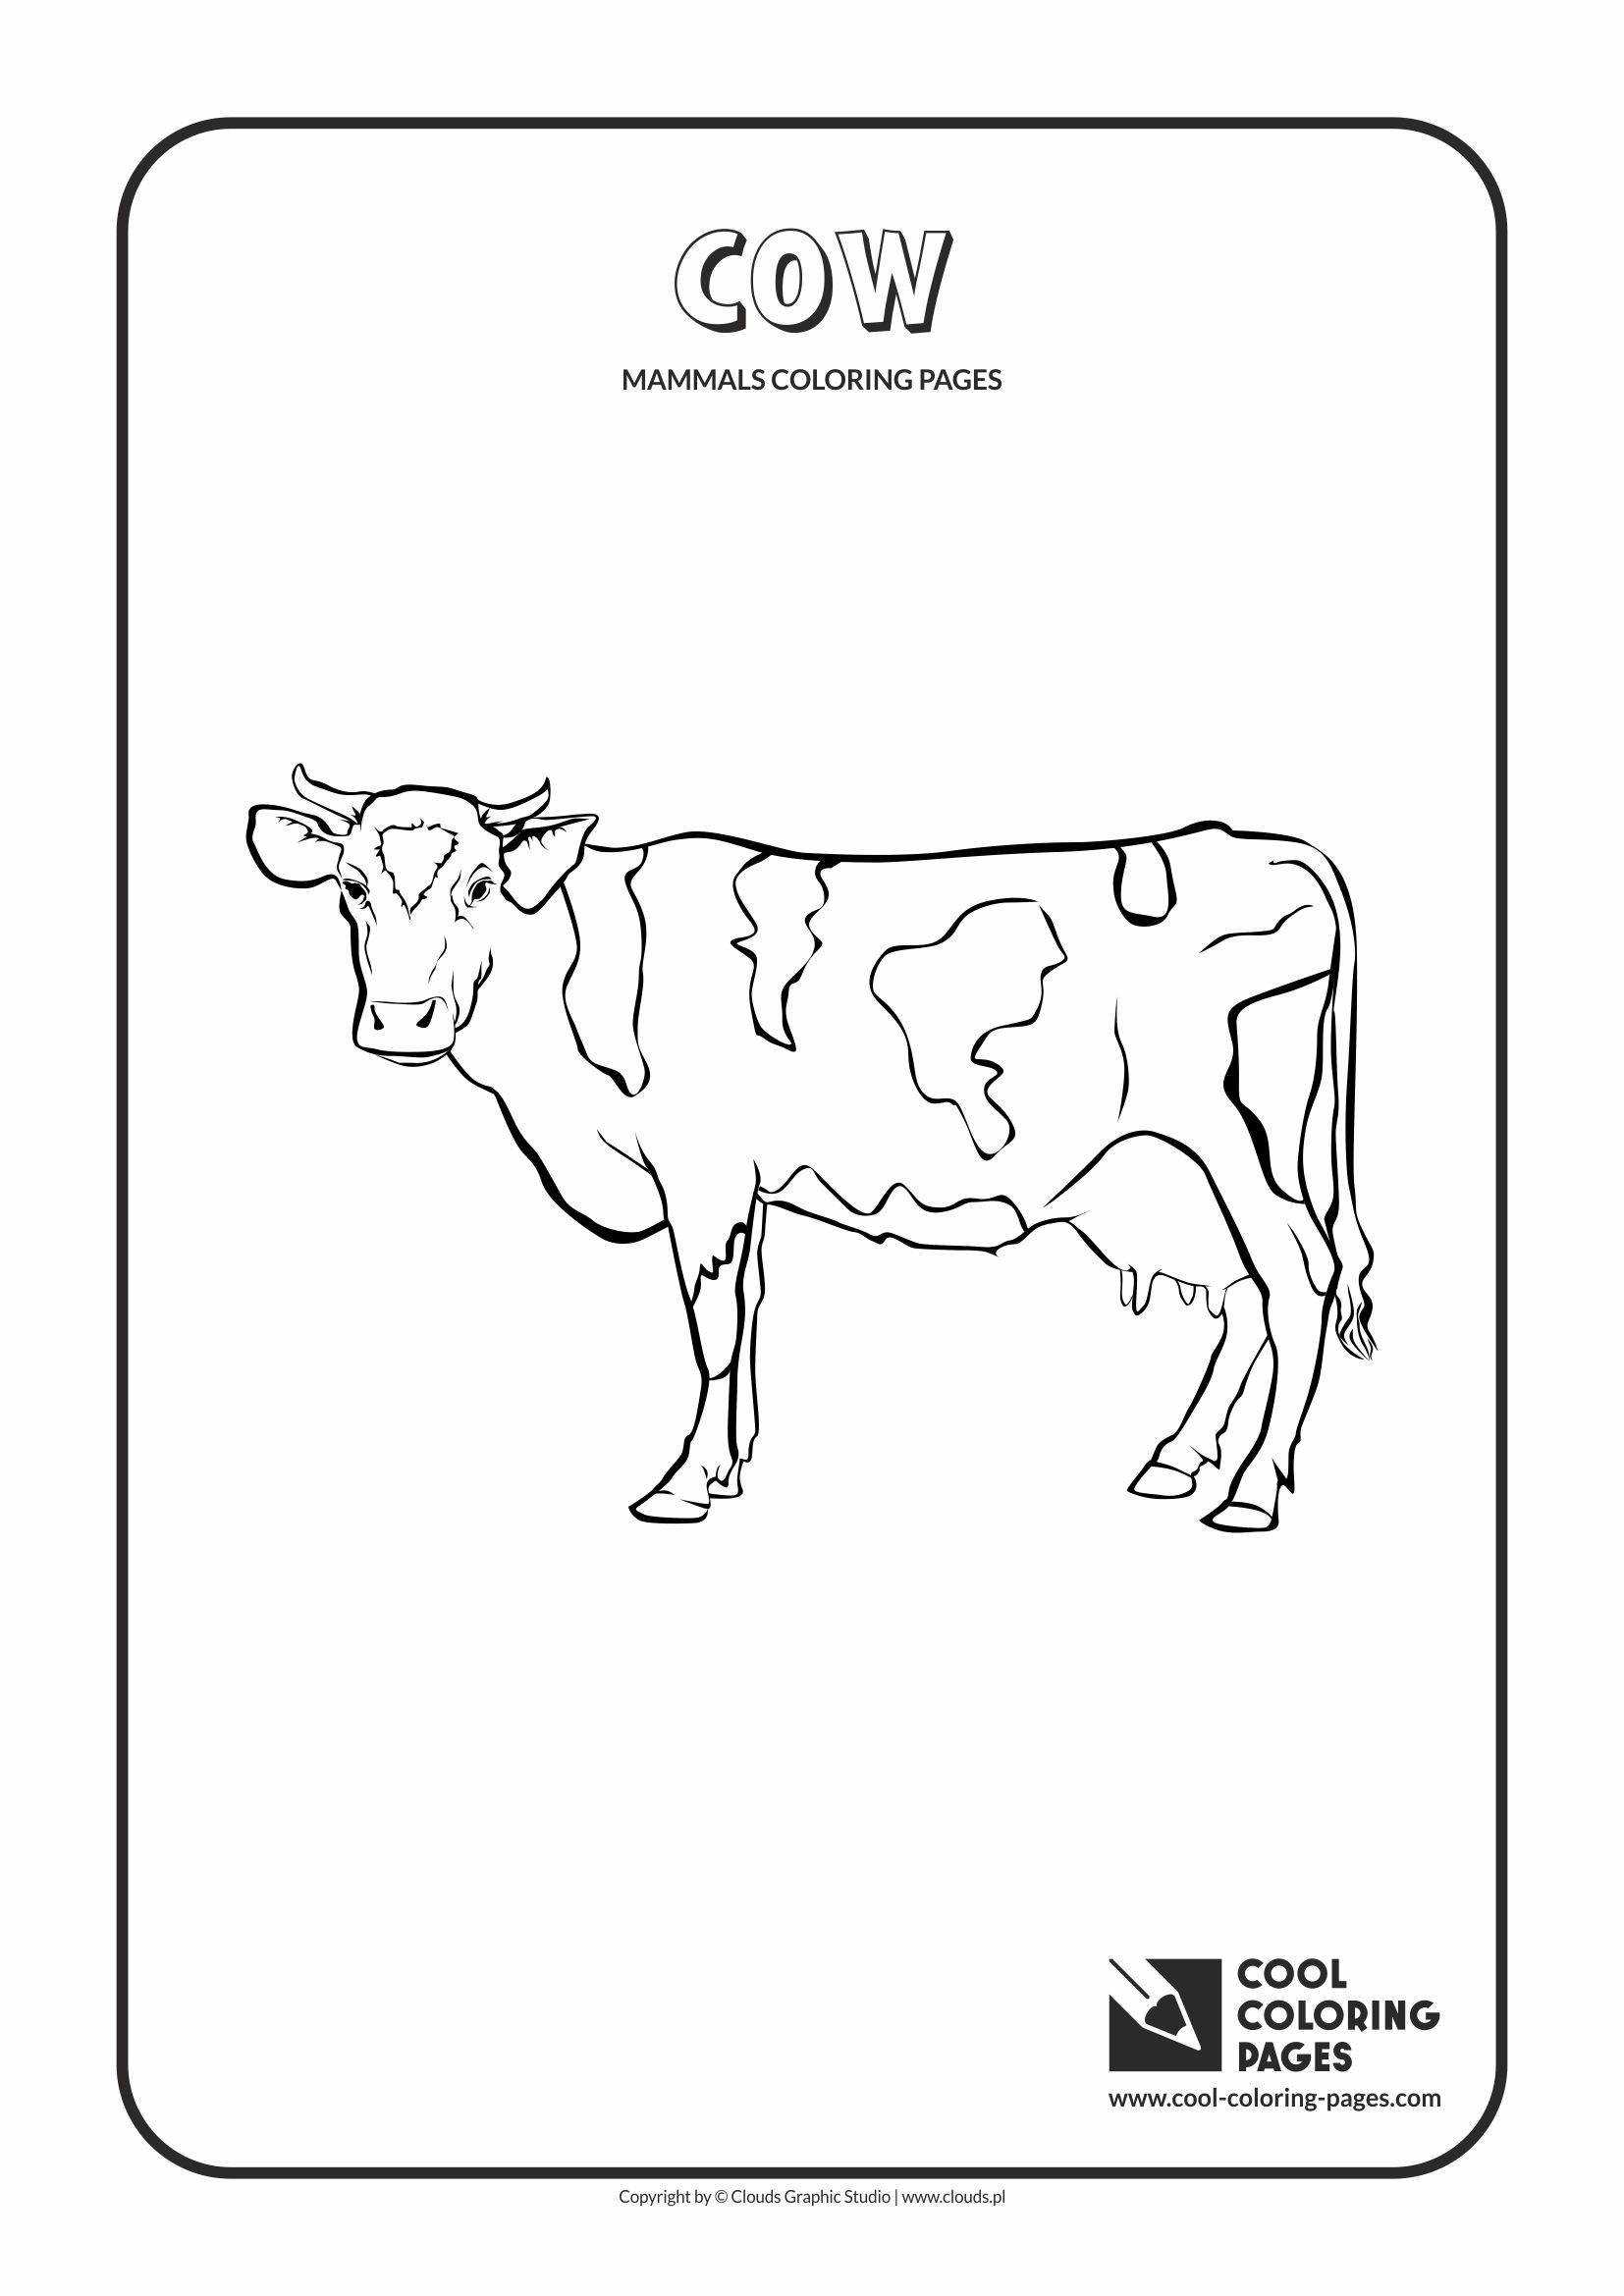 Cool Coloring Pages - Animals / Cow / Coloring page with cow